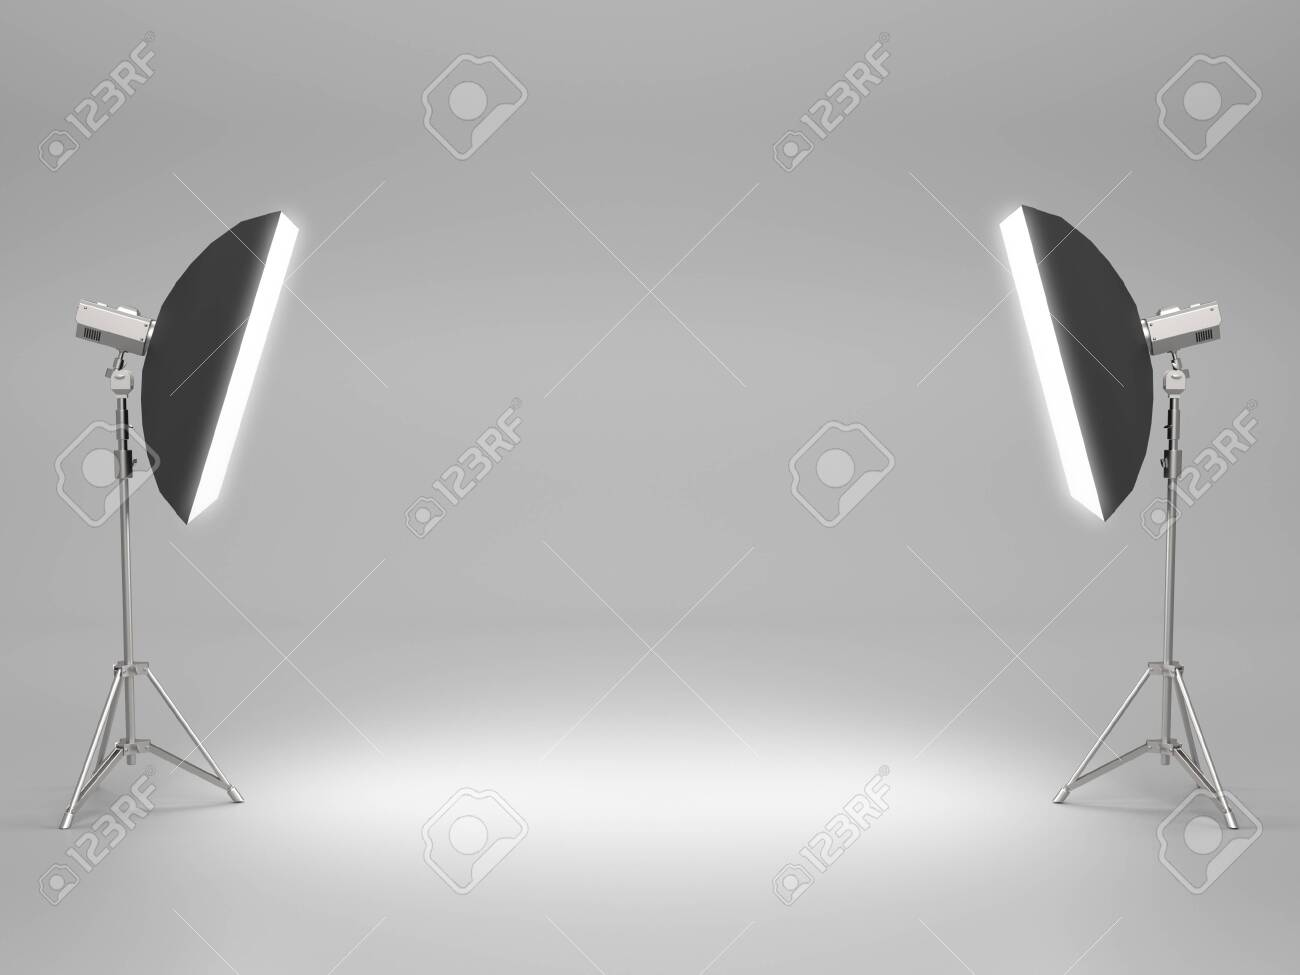 White pedestal for display,Platform for design,Blank product stand with SoftBox Light. 3D rendering - 144045358